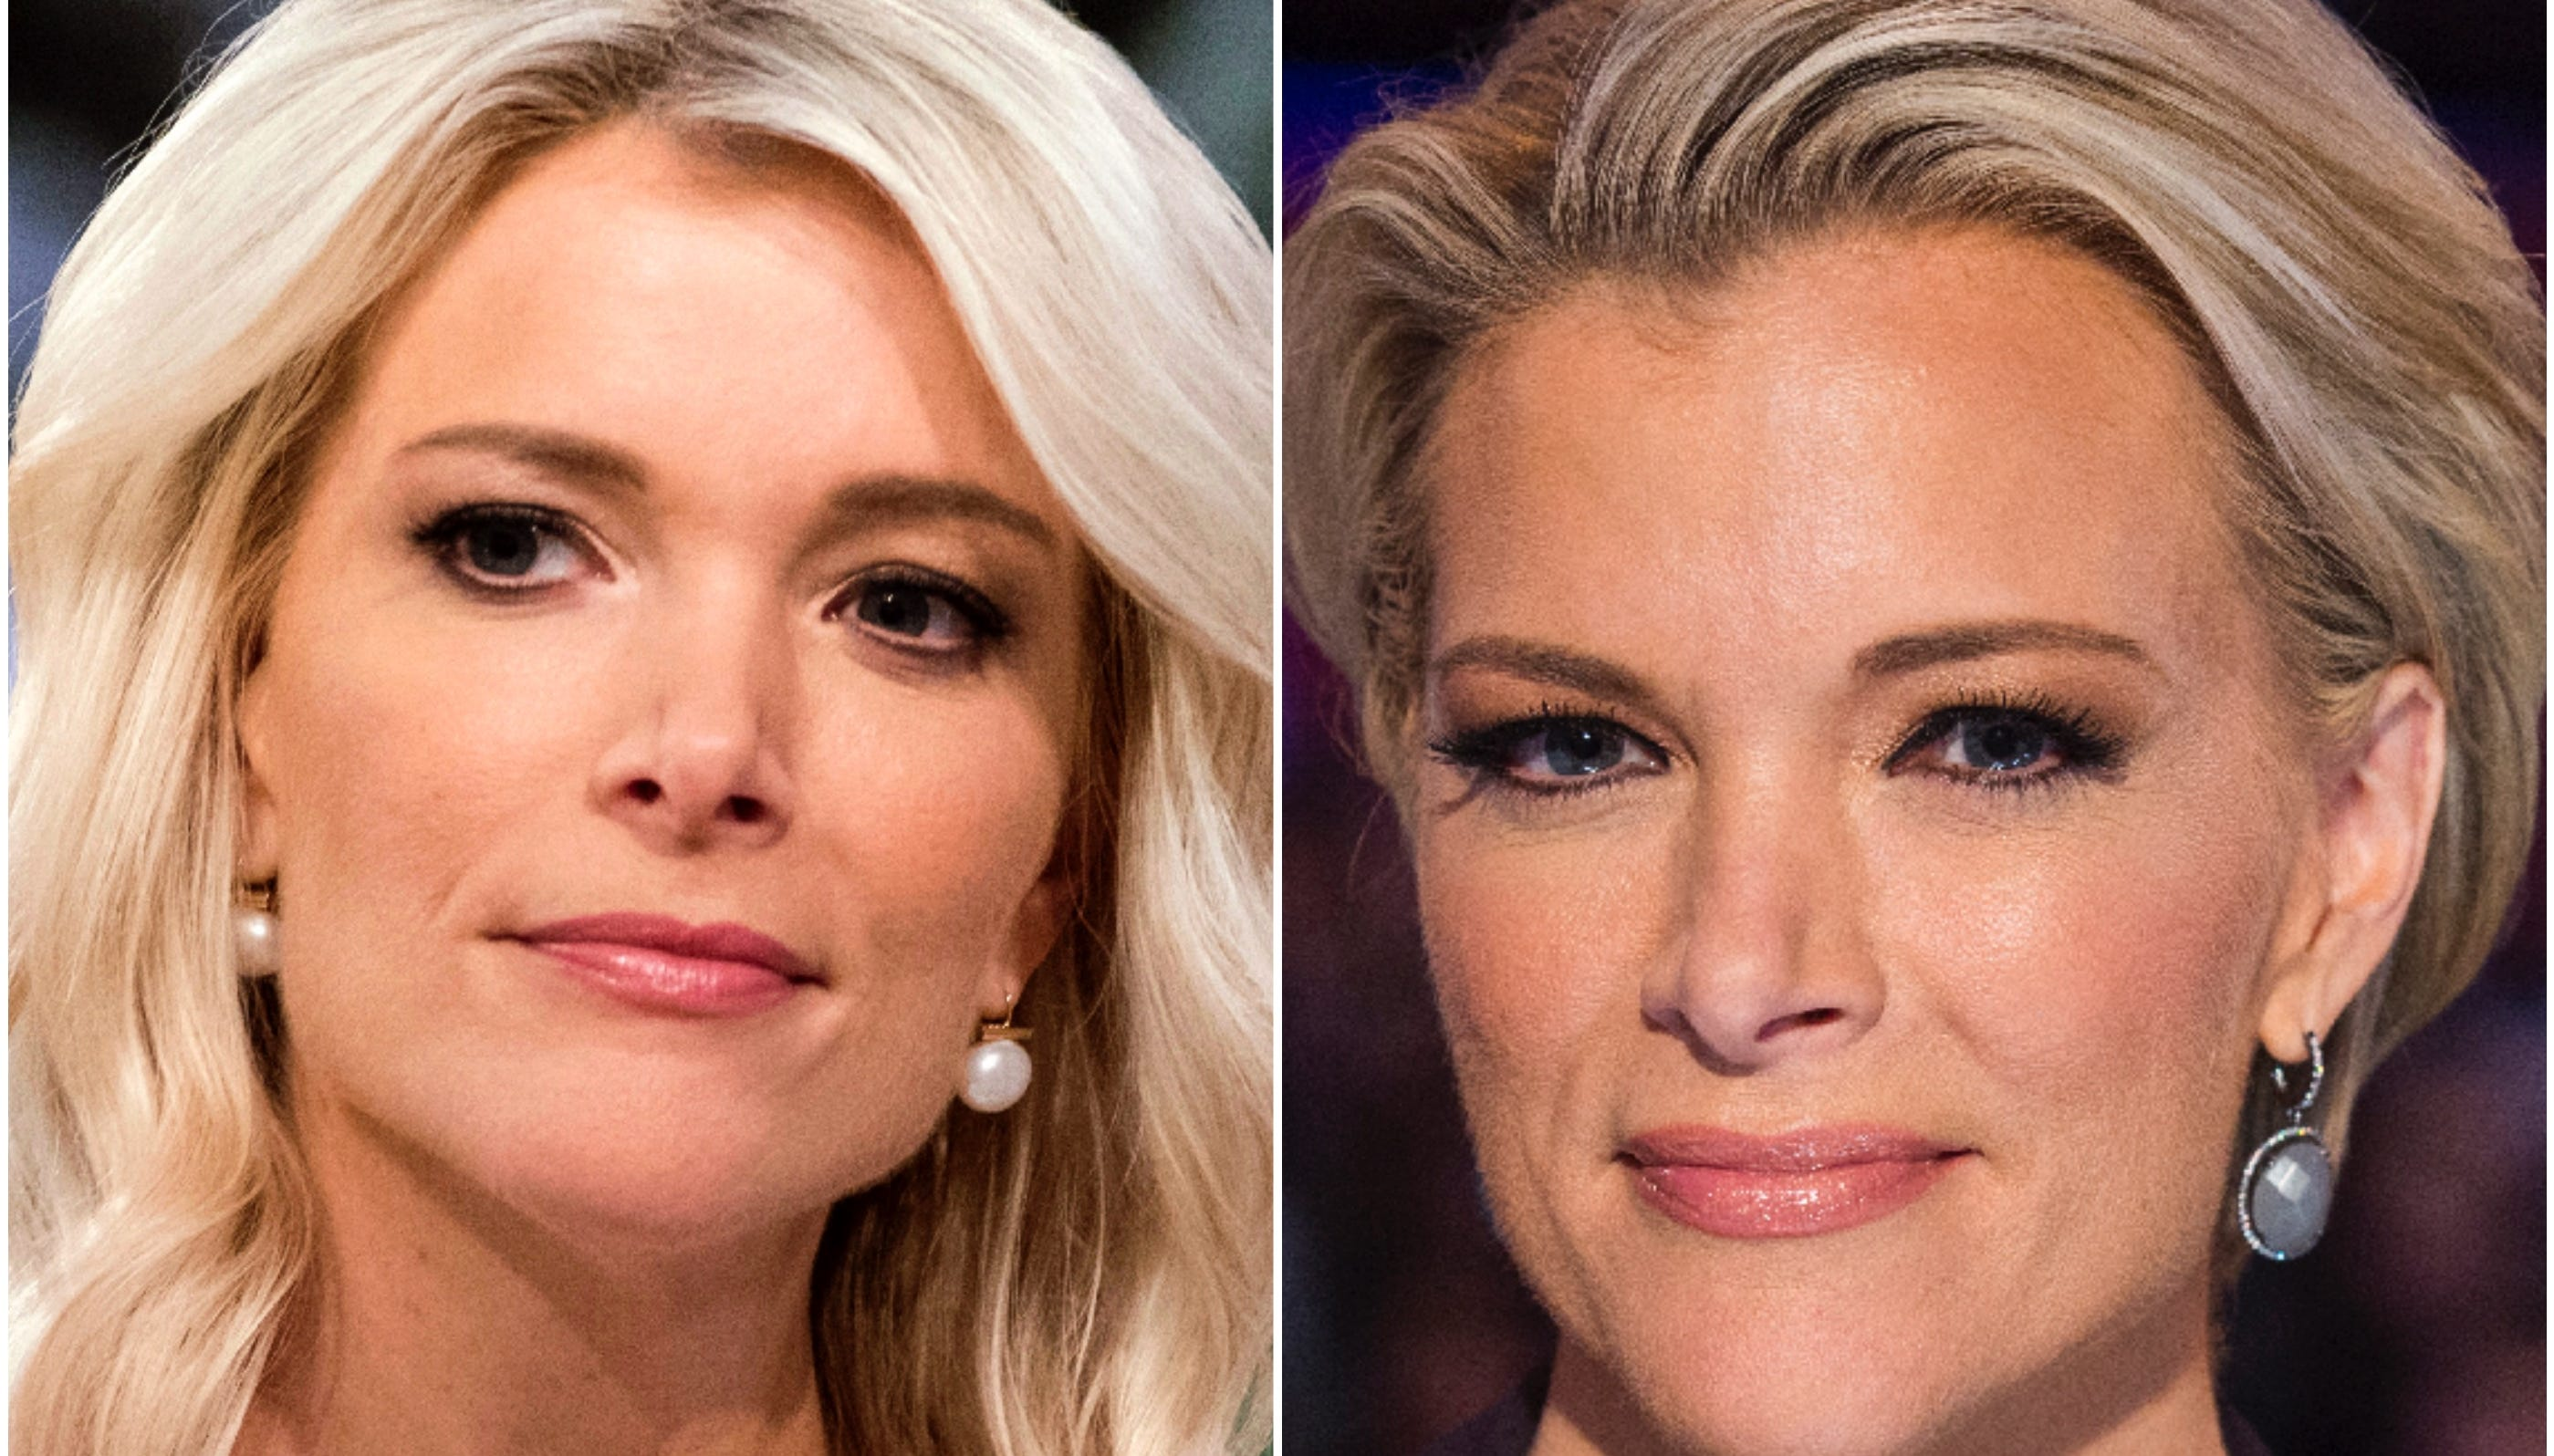 Megyn Kelly Chops Off Hair Looks Forward To New Beginnings